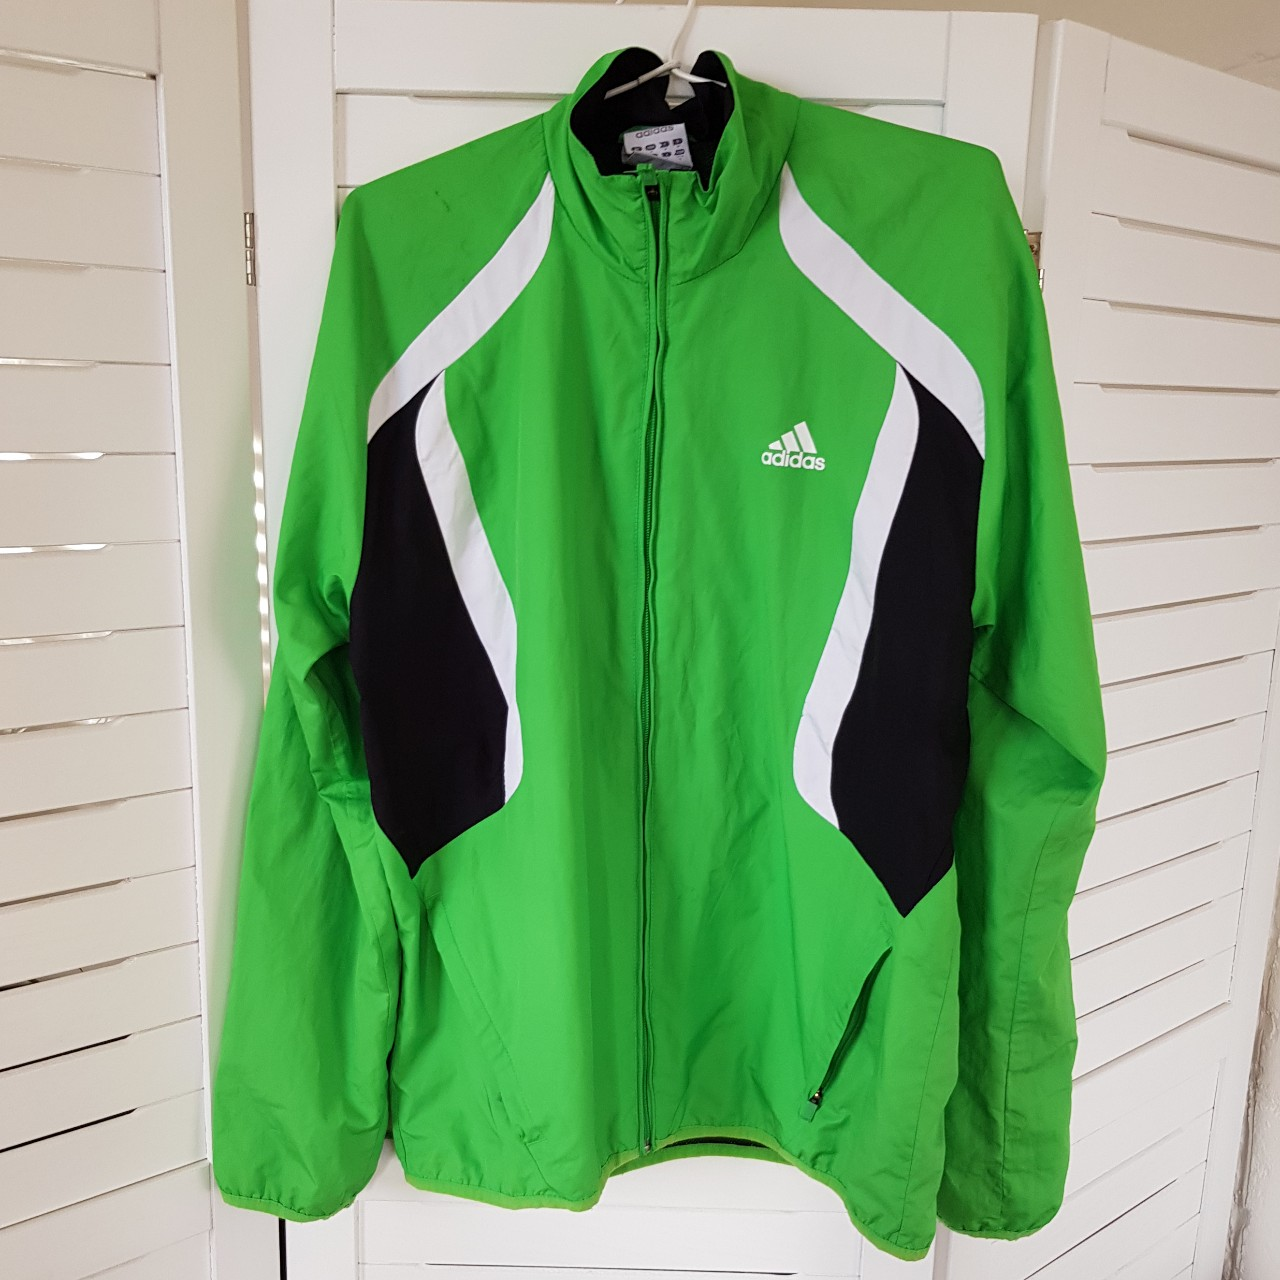 Adidas jacket in bright green with black and white Depop